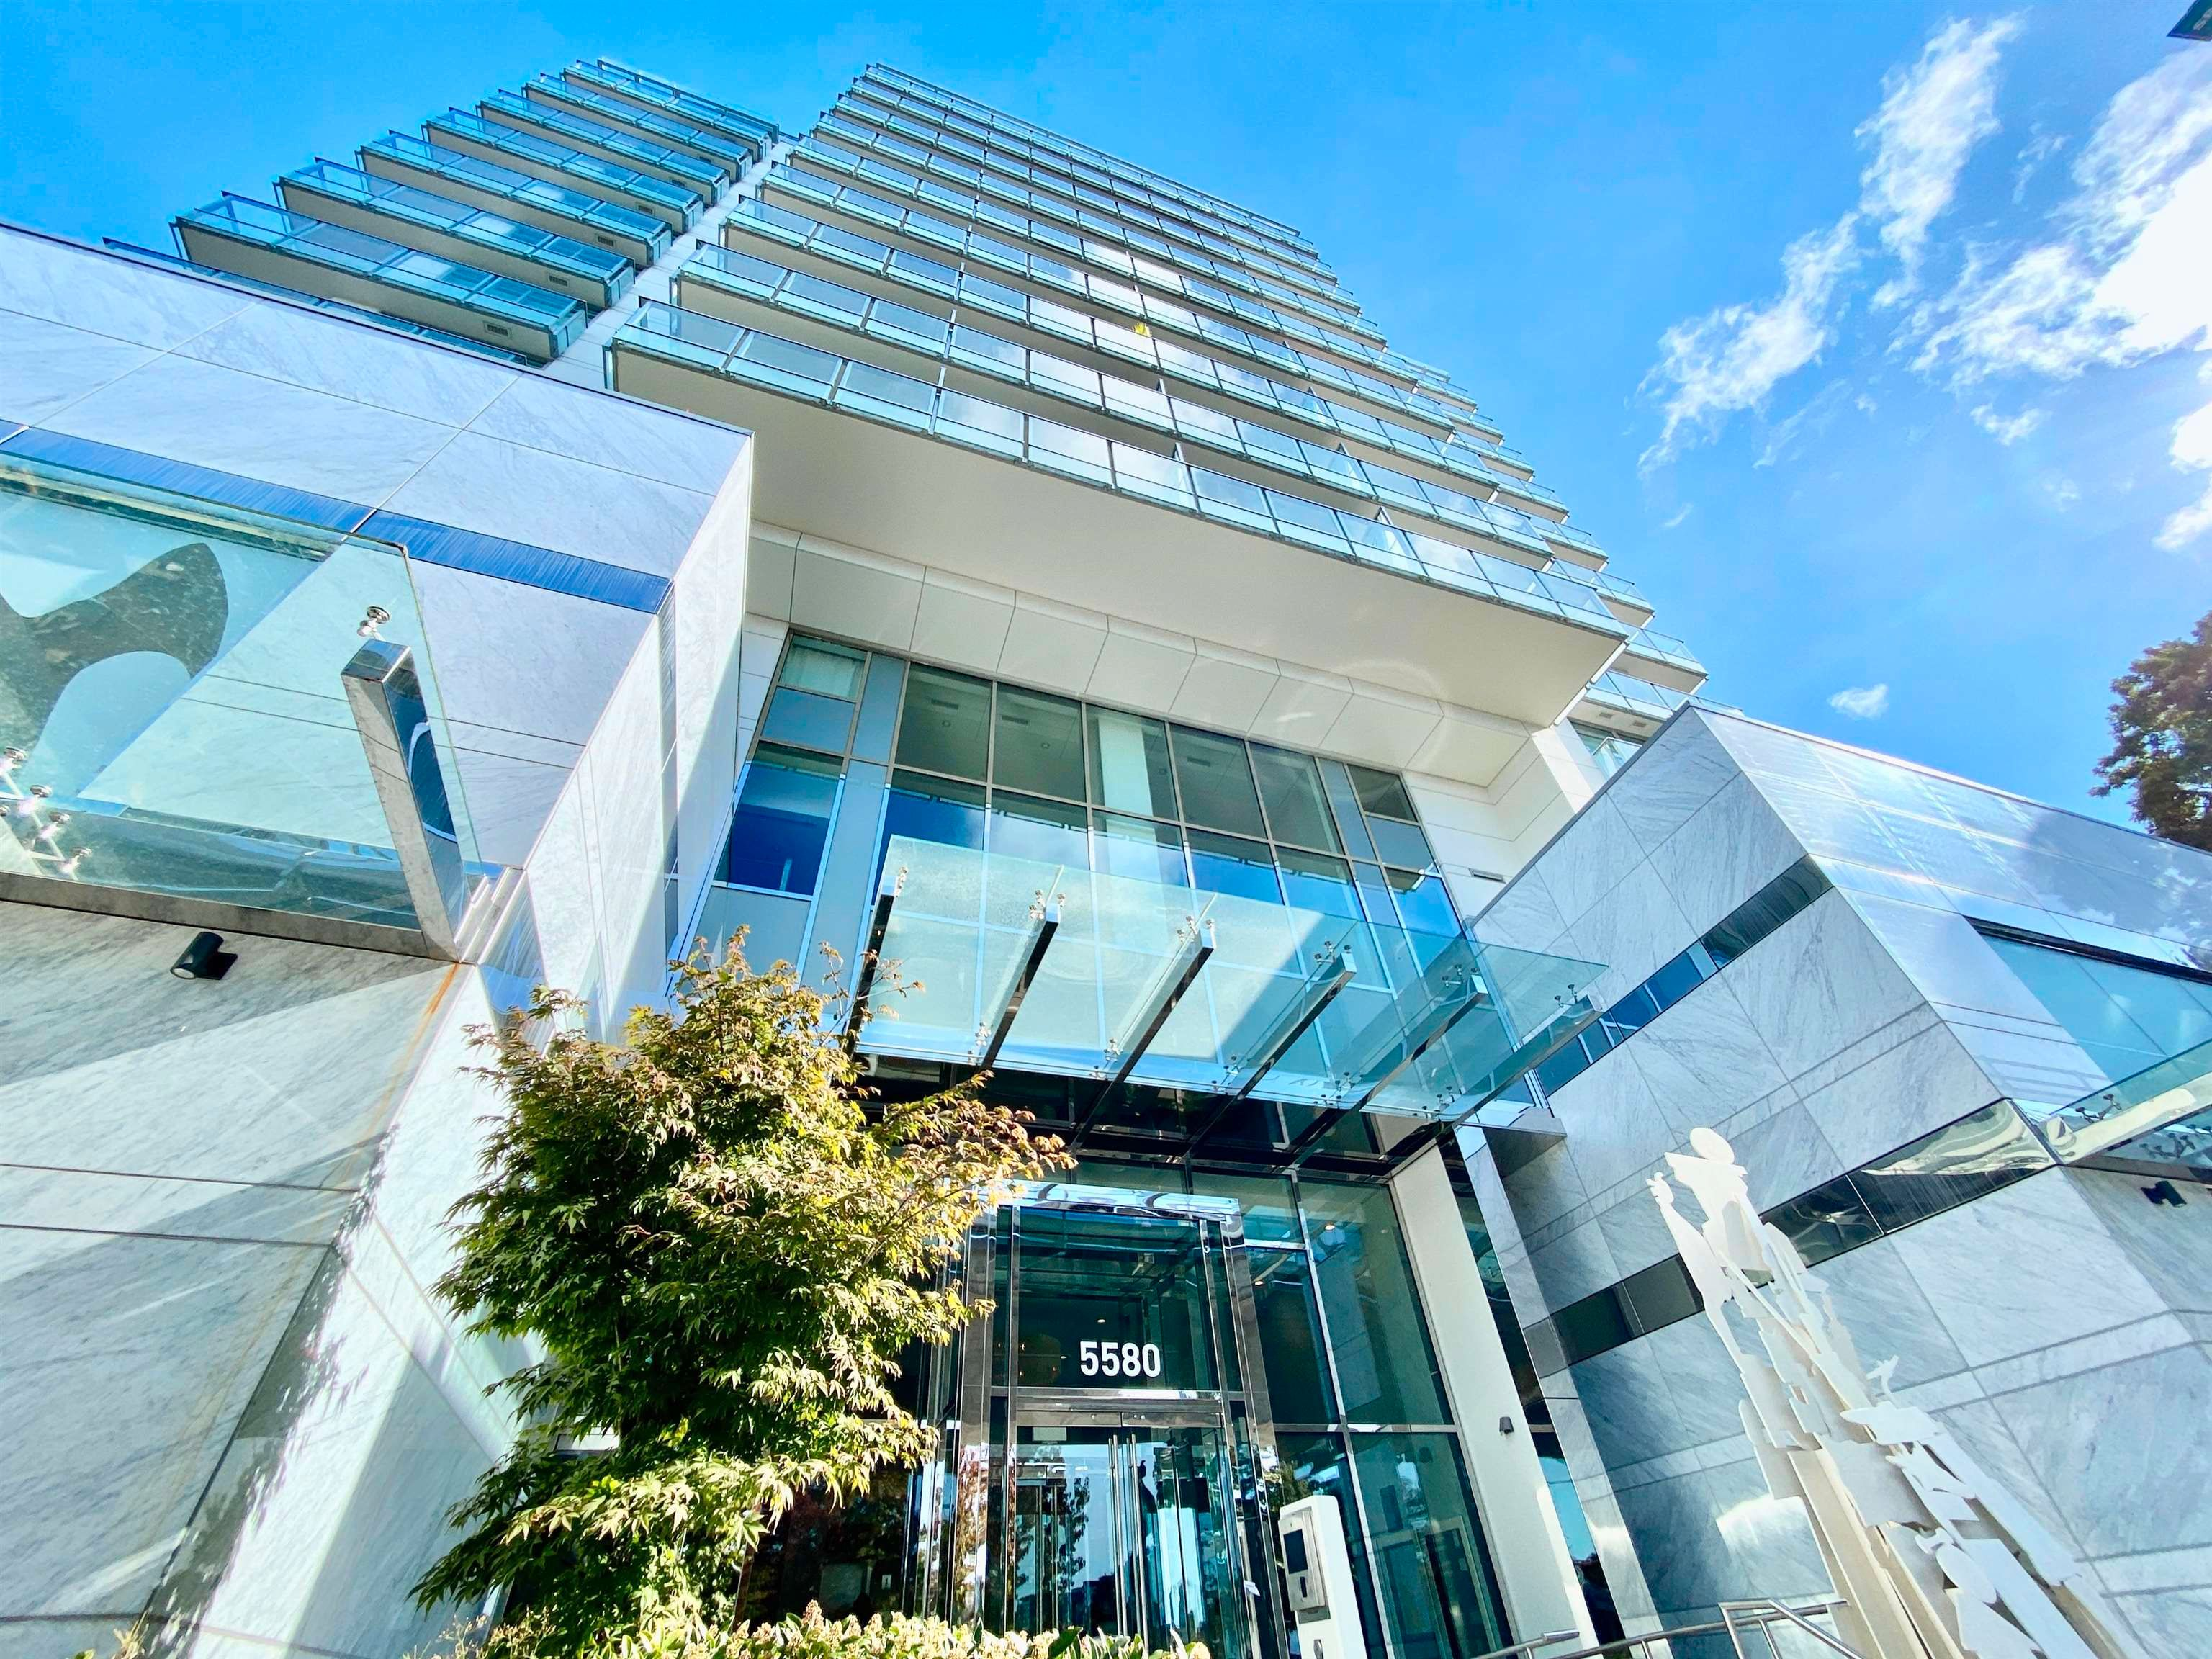 """Main Photo: 1603 5580 NO. 3 Road in Richmond: Brighouse Condo for sale in """"Orchid"""" : MLS®# R2625461"""